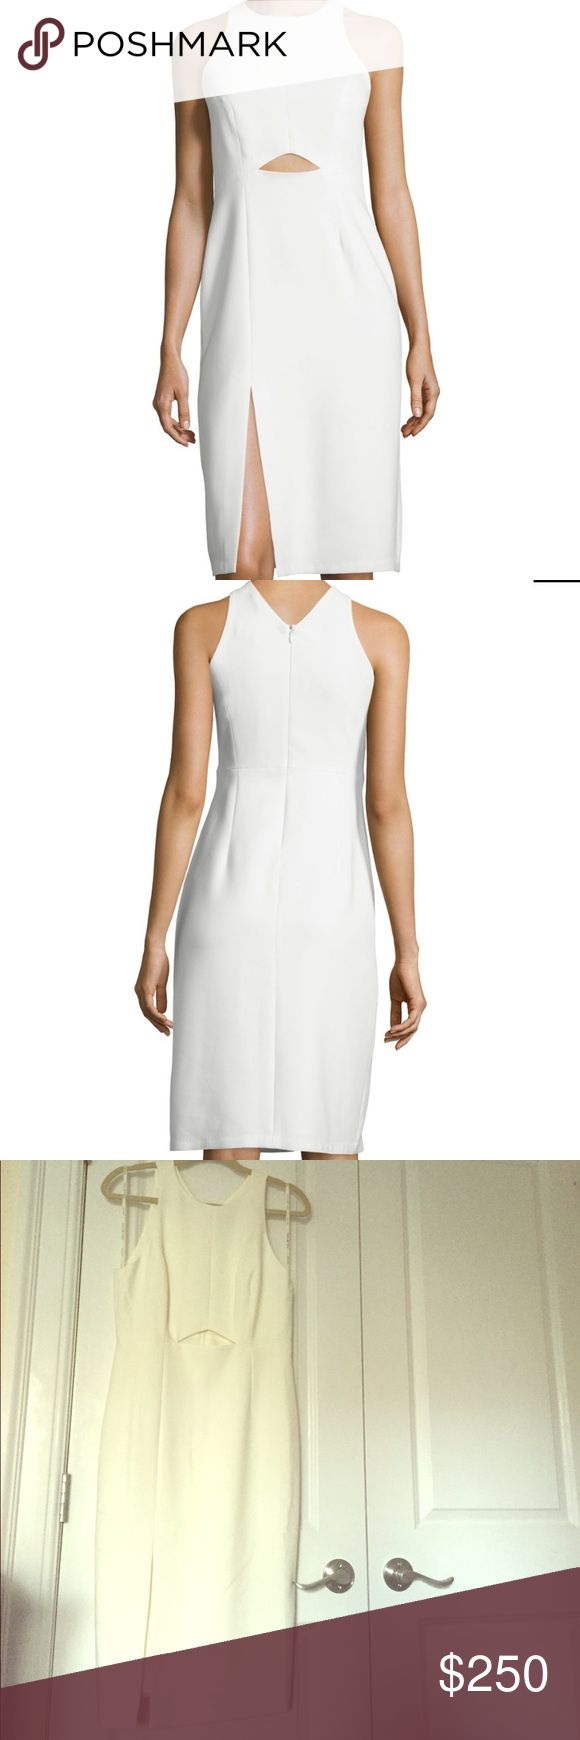 Sleeveless High-Neck Fitted Cutout Dress, Chalk Halston Heritage stretch-knit dress with front cutout. High jewel neckline; V'd back neck. Sleeveless; cut-in shoulders. Fitted silhouette. Thigh-high slit at right front hem. Hidden back zip. Polyester/viscose/spandex. Imported. Halston Heritage Dresses Midi